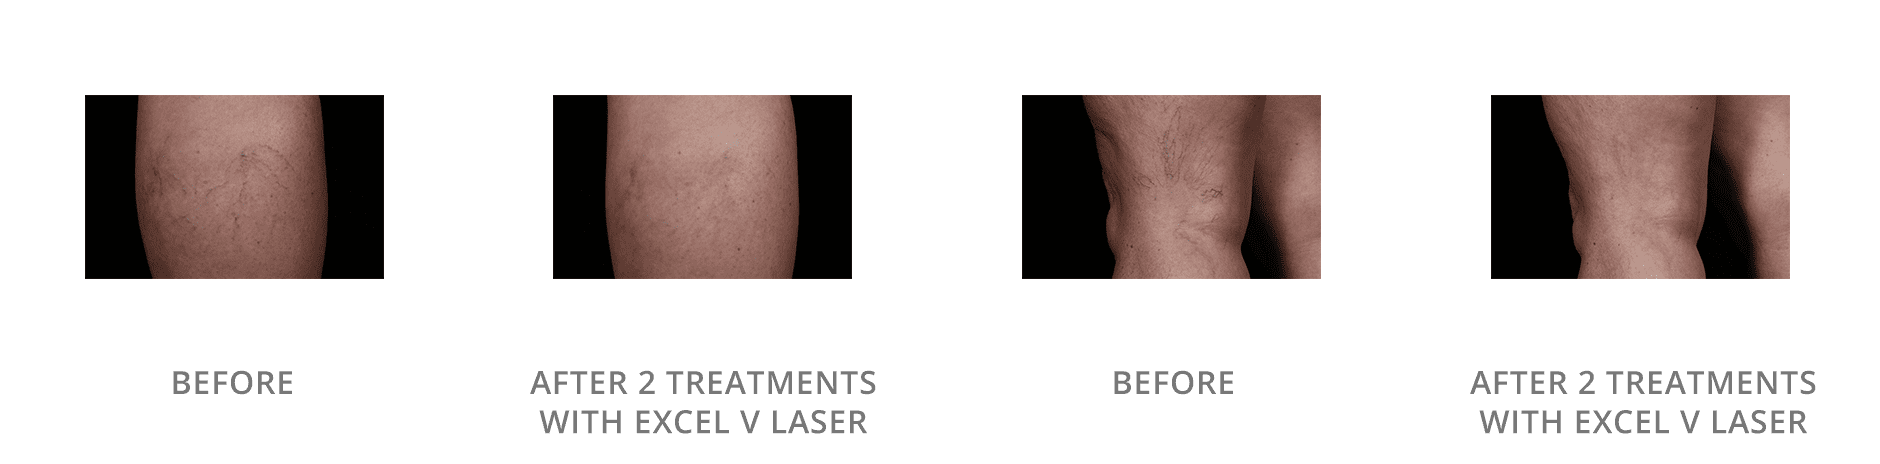 Spider Vein Treatment Before And After Gallery Blaine Mn Associated Skin Care Specialists